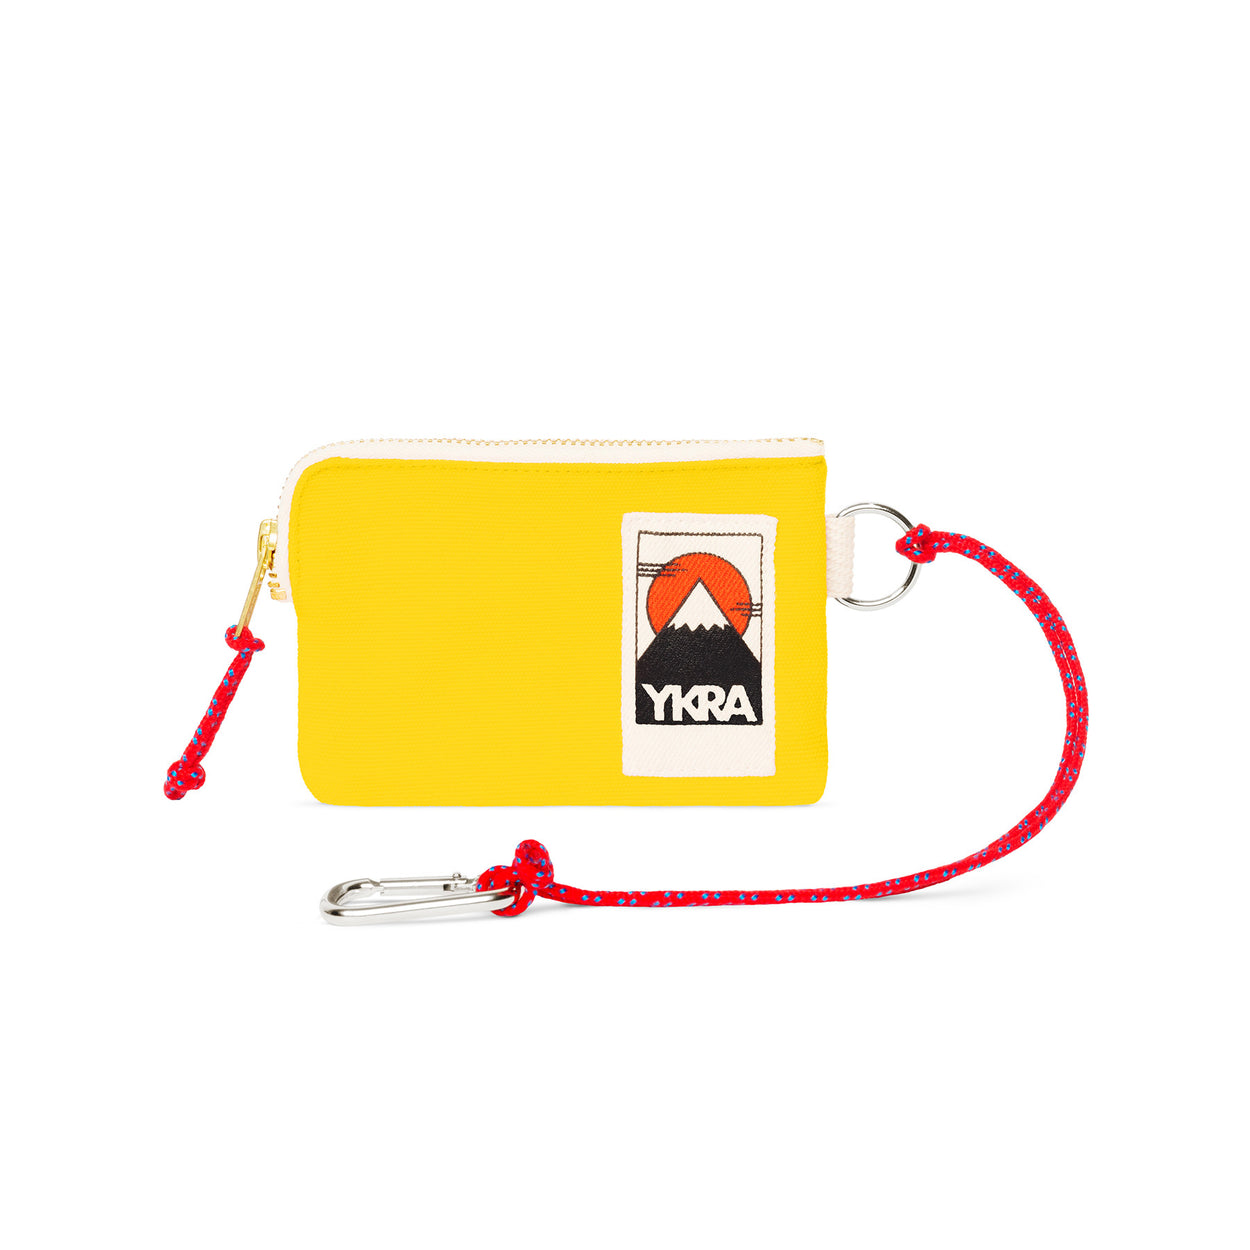 YKRA MINI WALLET YELLOW